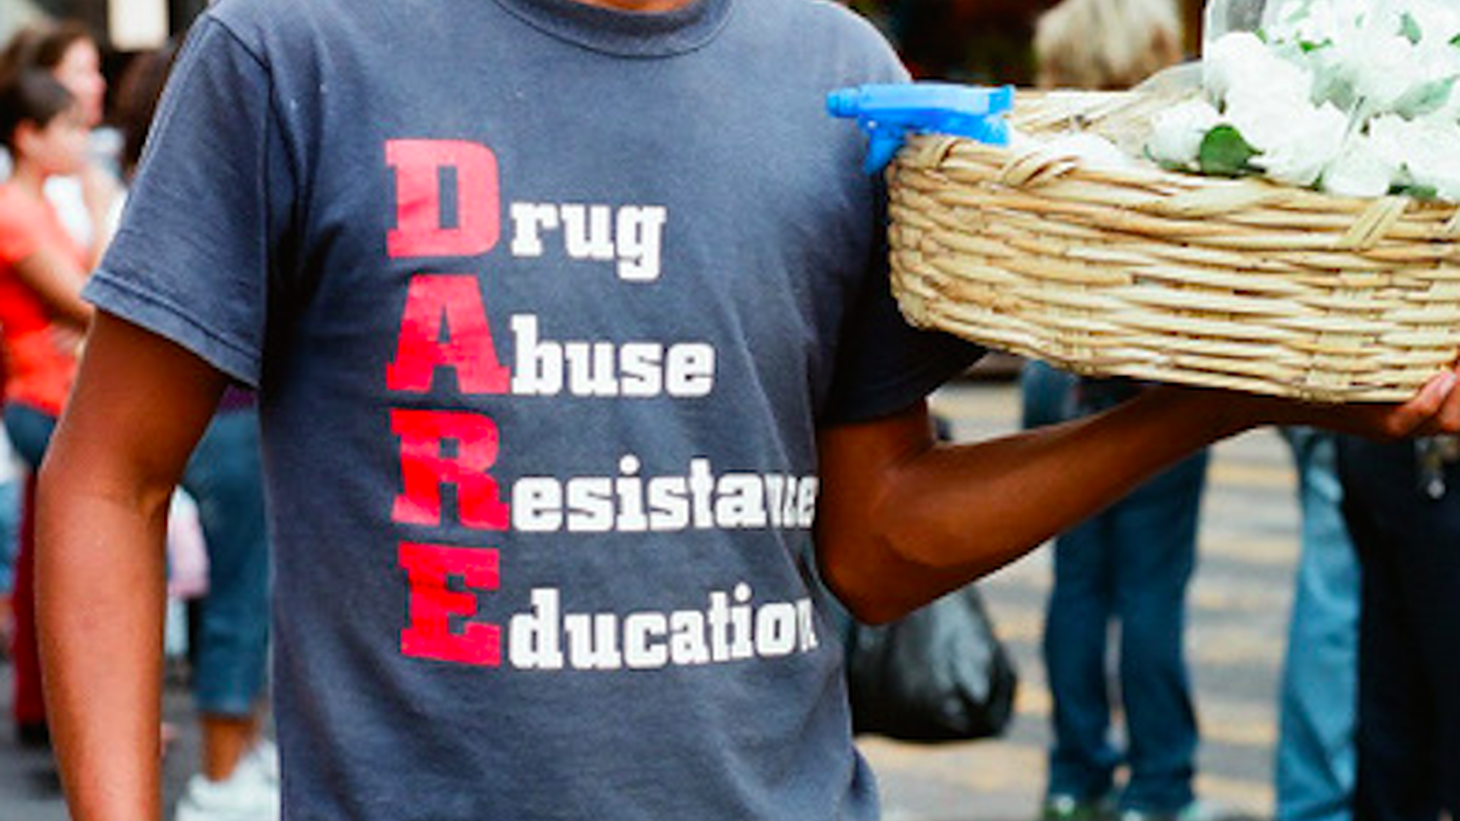 D.A.R.E. was once the most widely used school-based substance abuse prevention program in the country, and it was invented right here in Los Angeles.